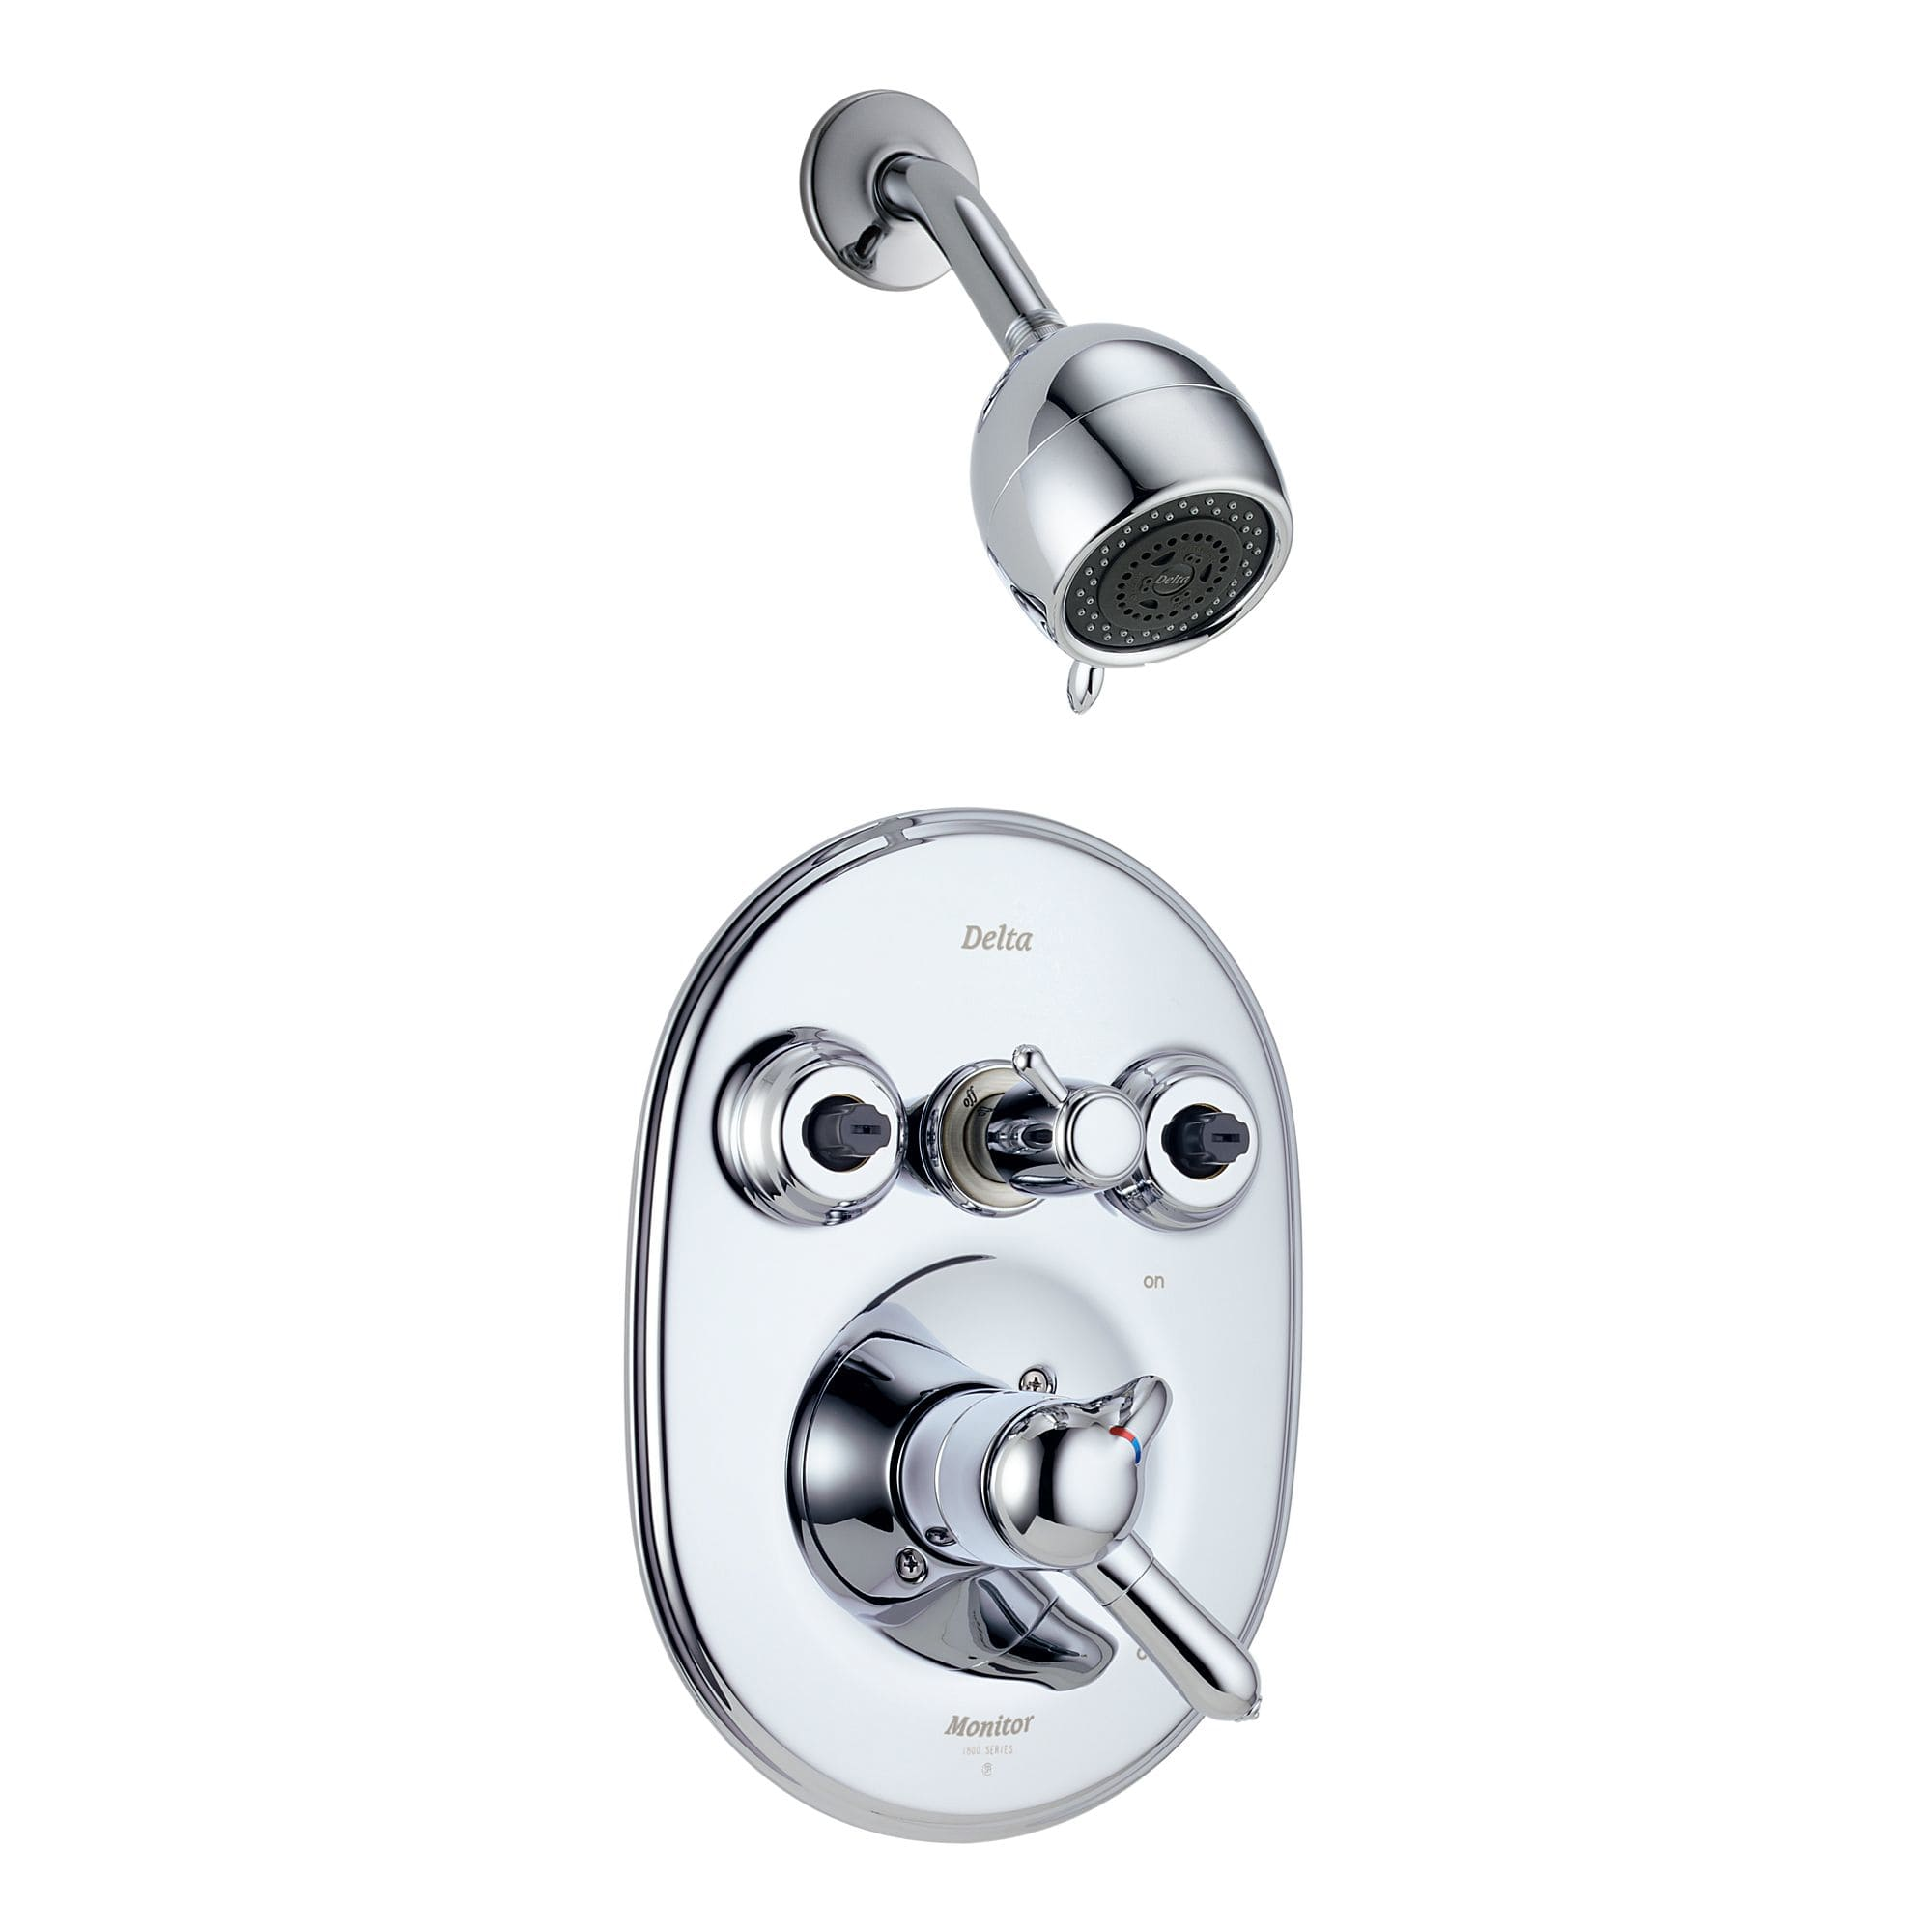 Delta T18230 Xo Chrome Double Handle Monitor 18 Shower System With Body Spray Jets And Multi Function Shower Head From The Innovations Collection Faucet Com